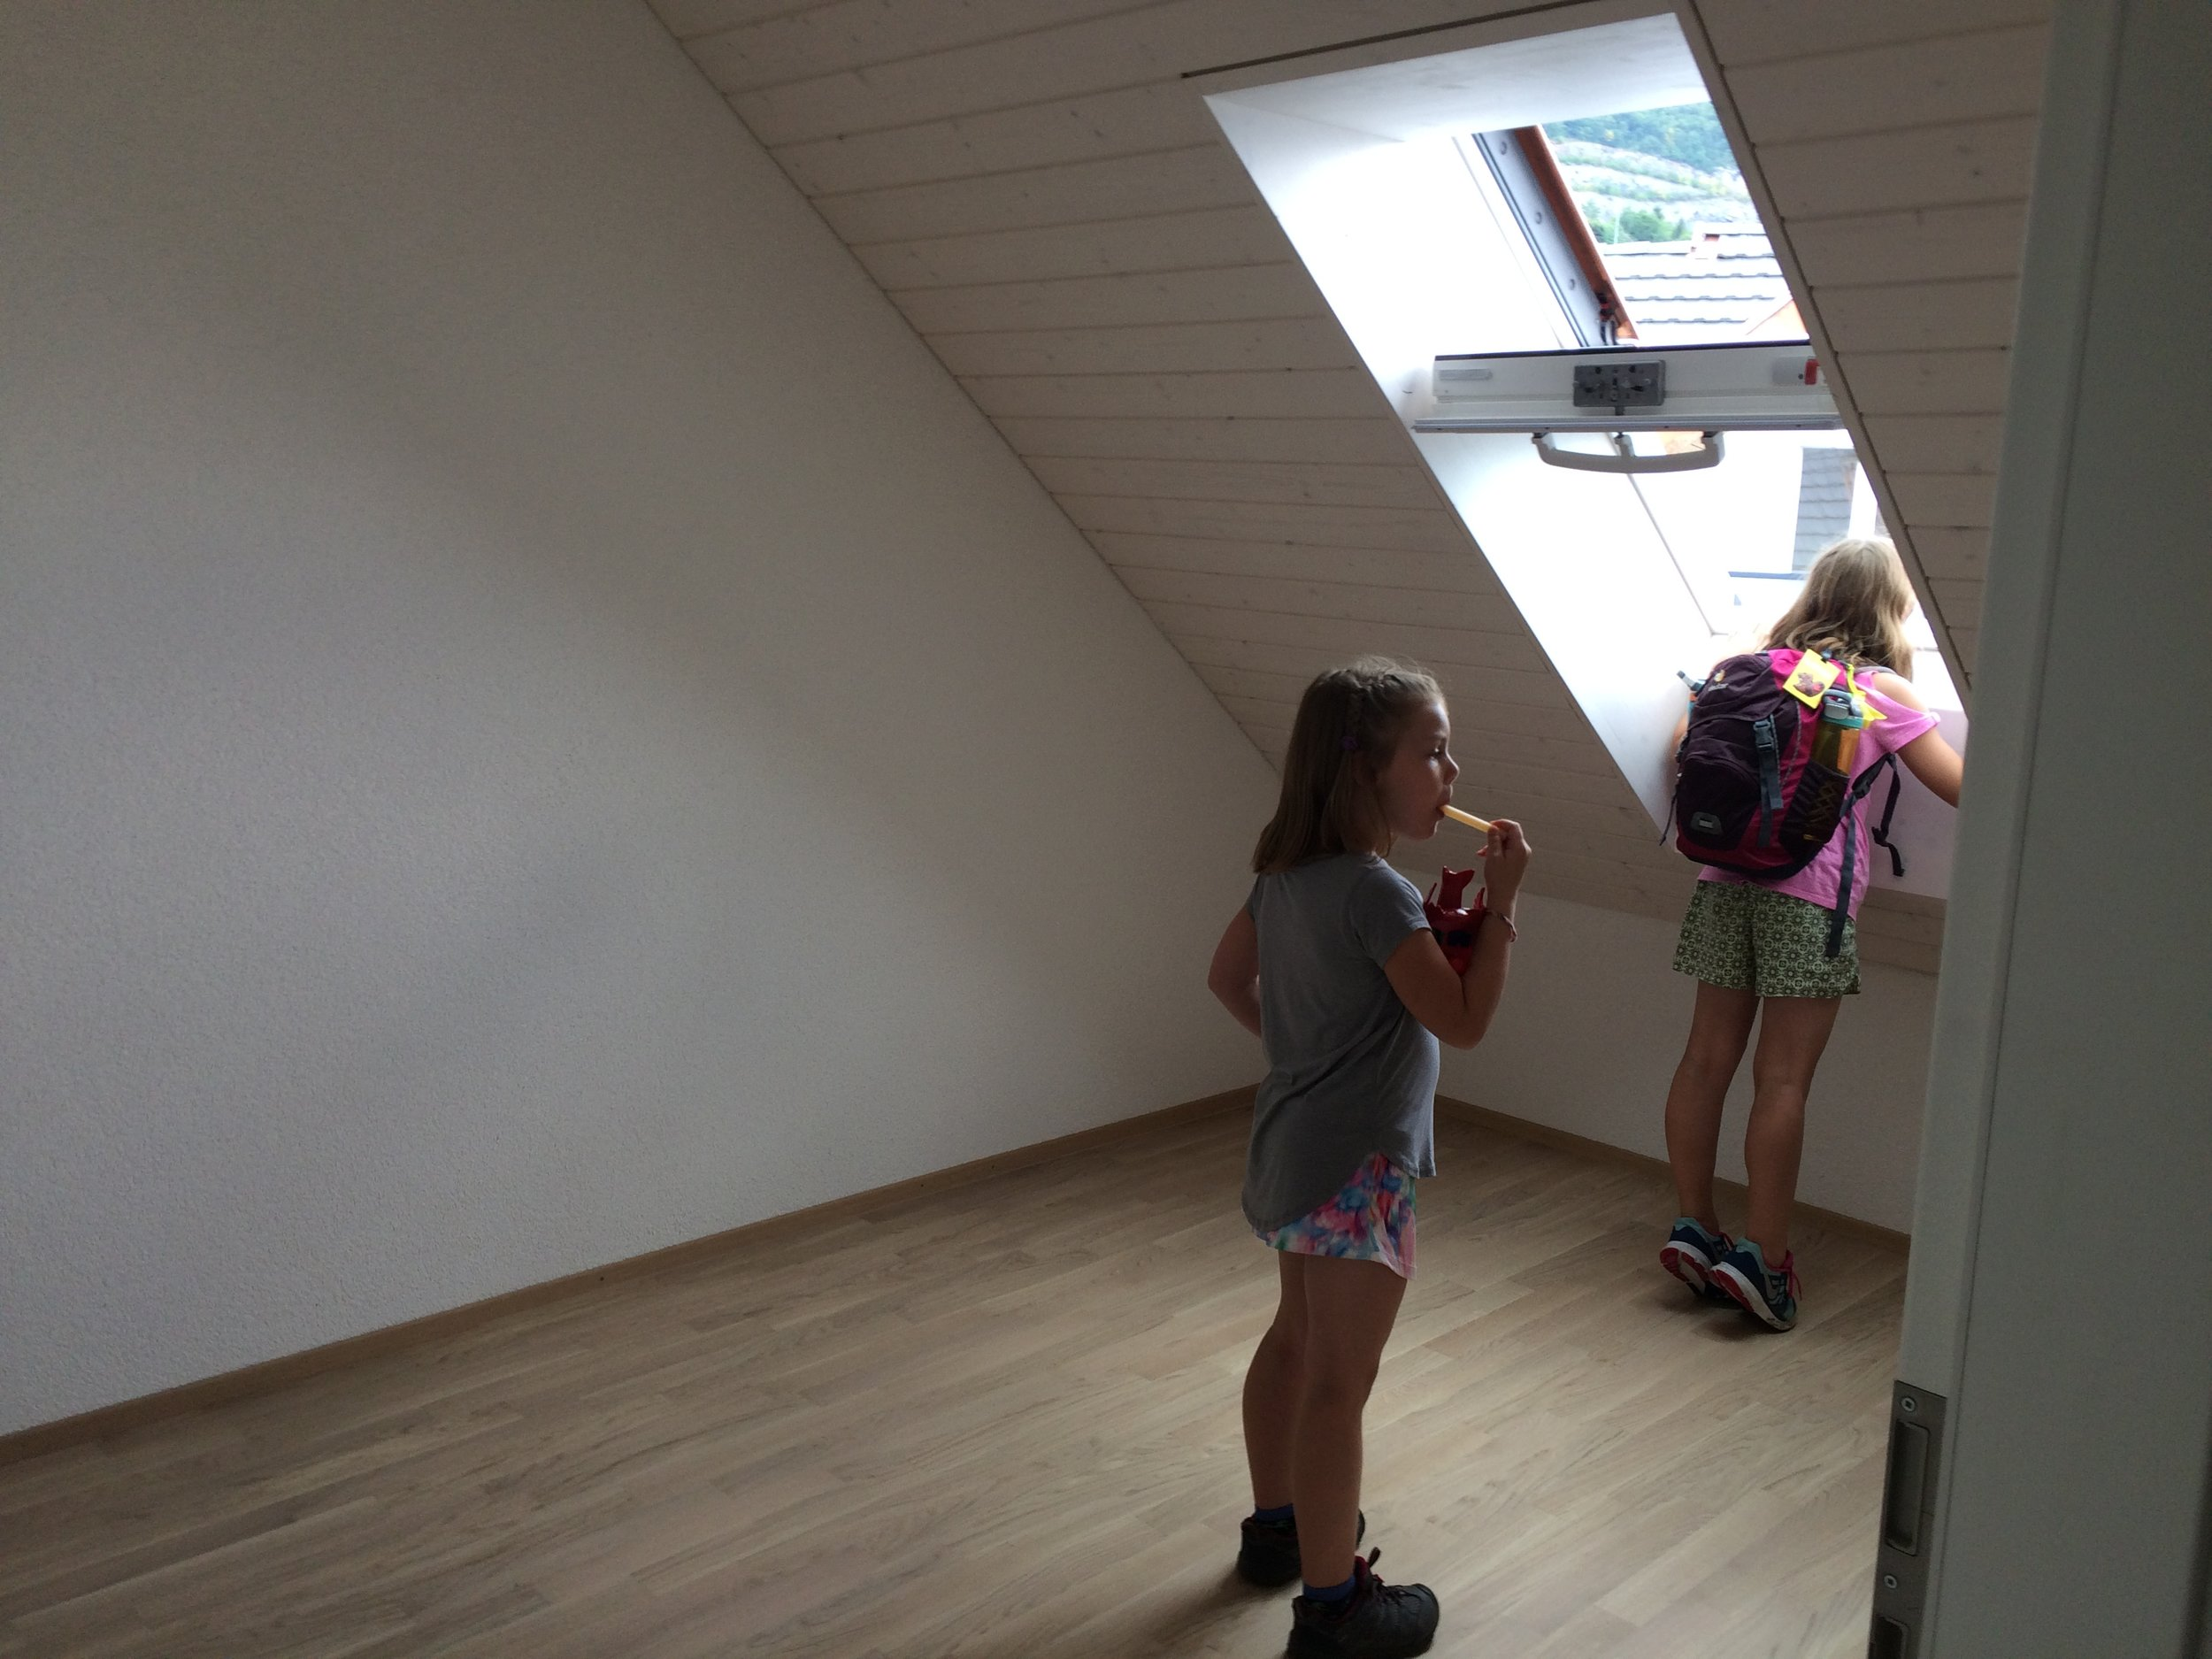 Apartment hunting with backpacks and popsicles. Views out the window imperative to the right choice - this apartment was the winner - Harry Potter style stair hideout thank you very much!